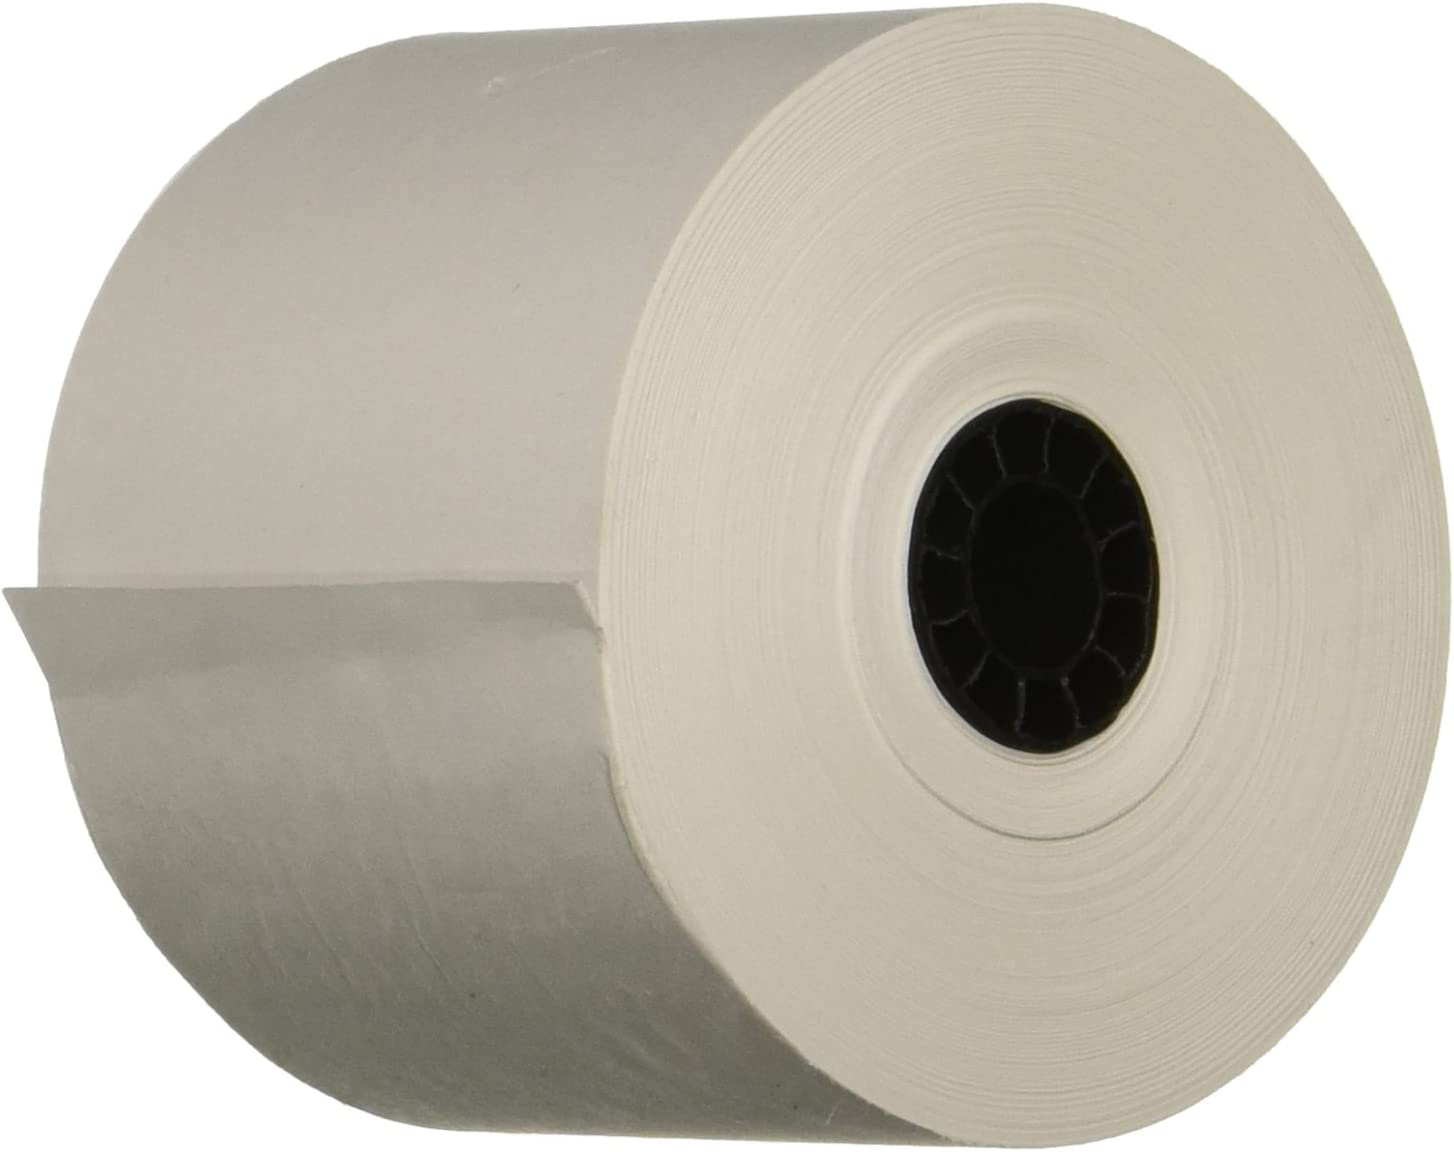 "Adding Machine Rolls, 2-1/4""x150', 12/PK, White"